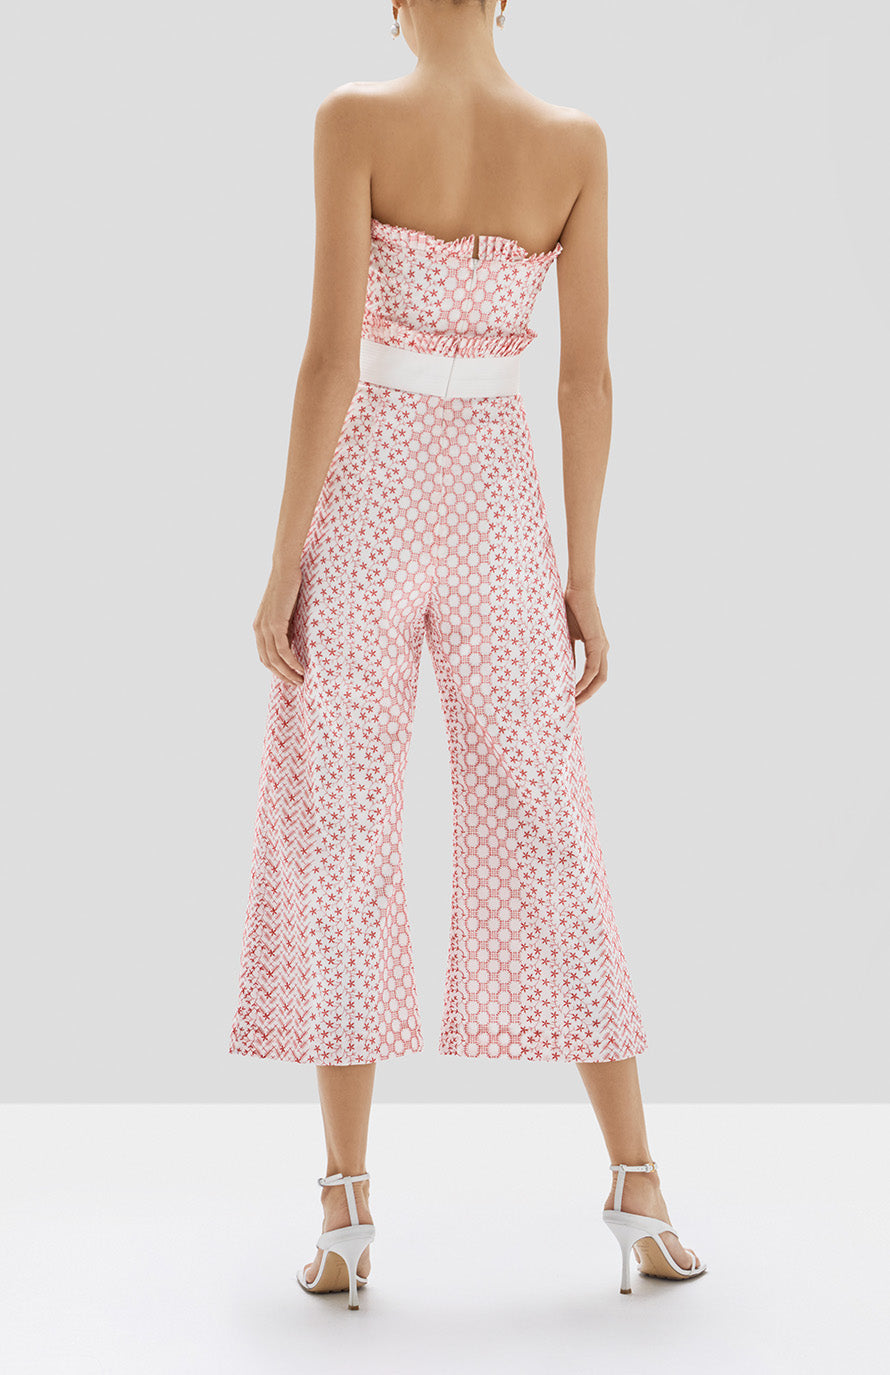 Alexis Pretti Jumpsuit in Red Embroidery from Pre Spring 2020 - Rear View